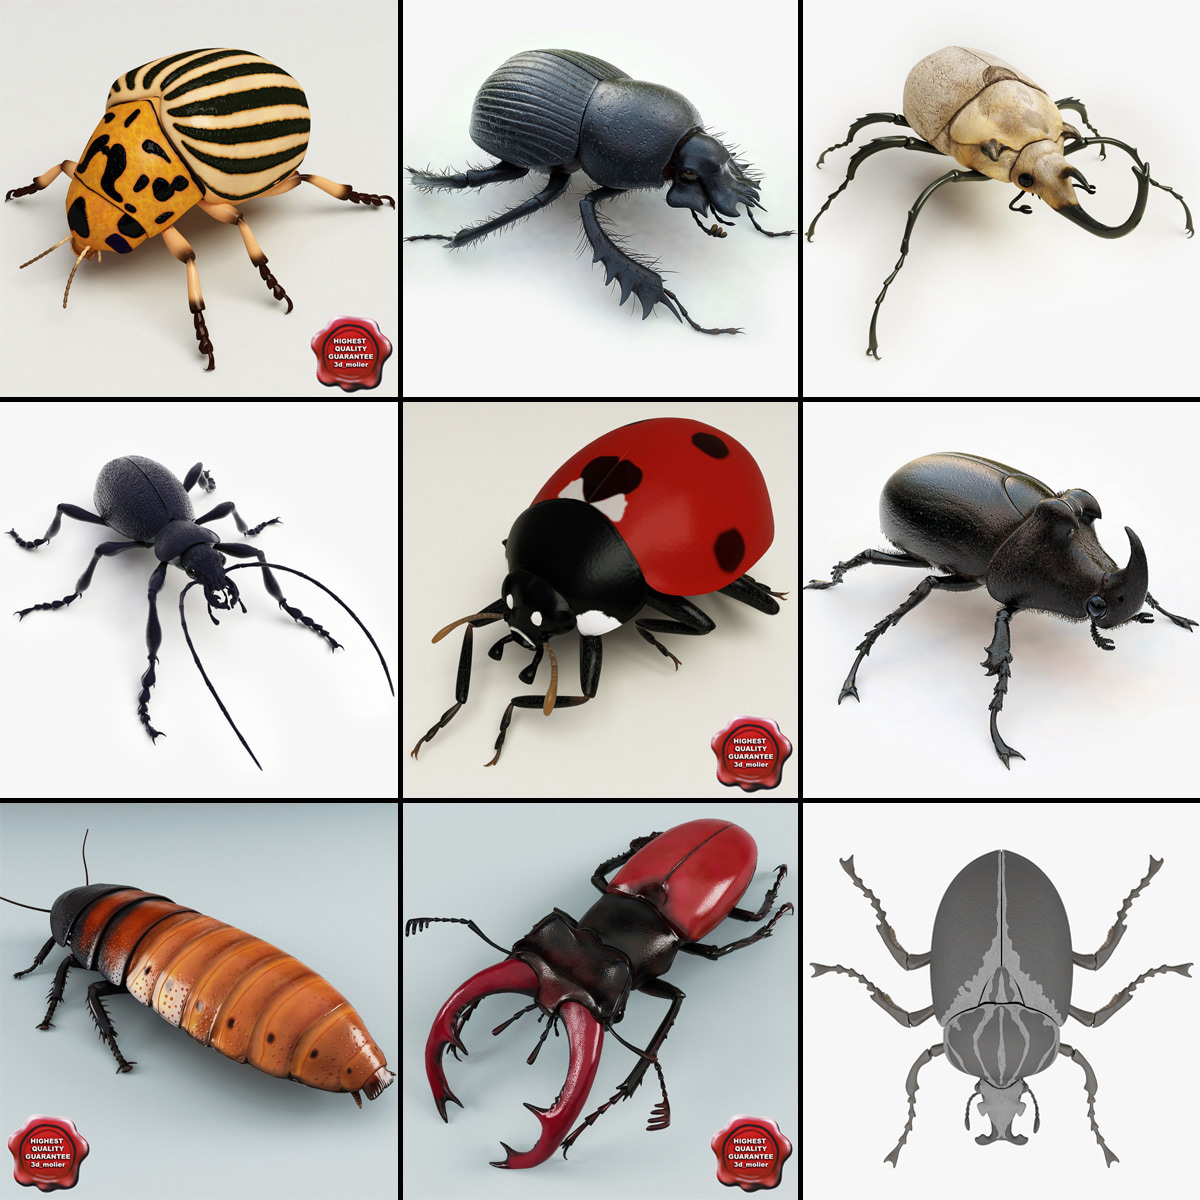 Bugs_Collection_V4_000.jpg